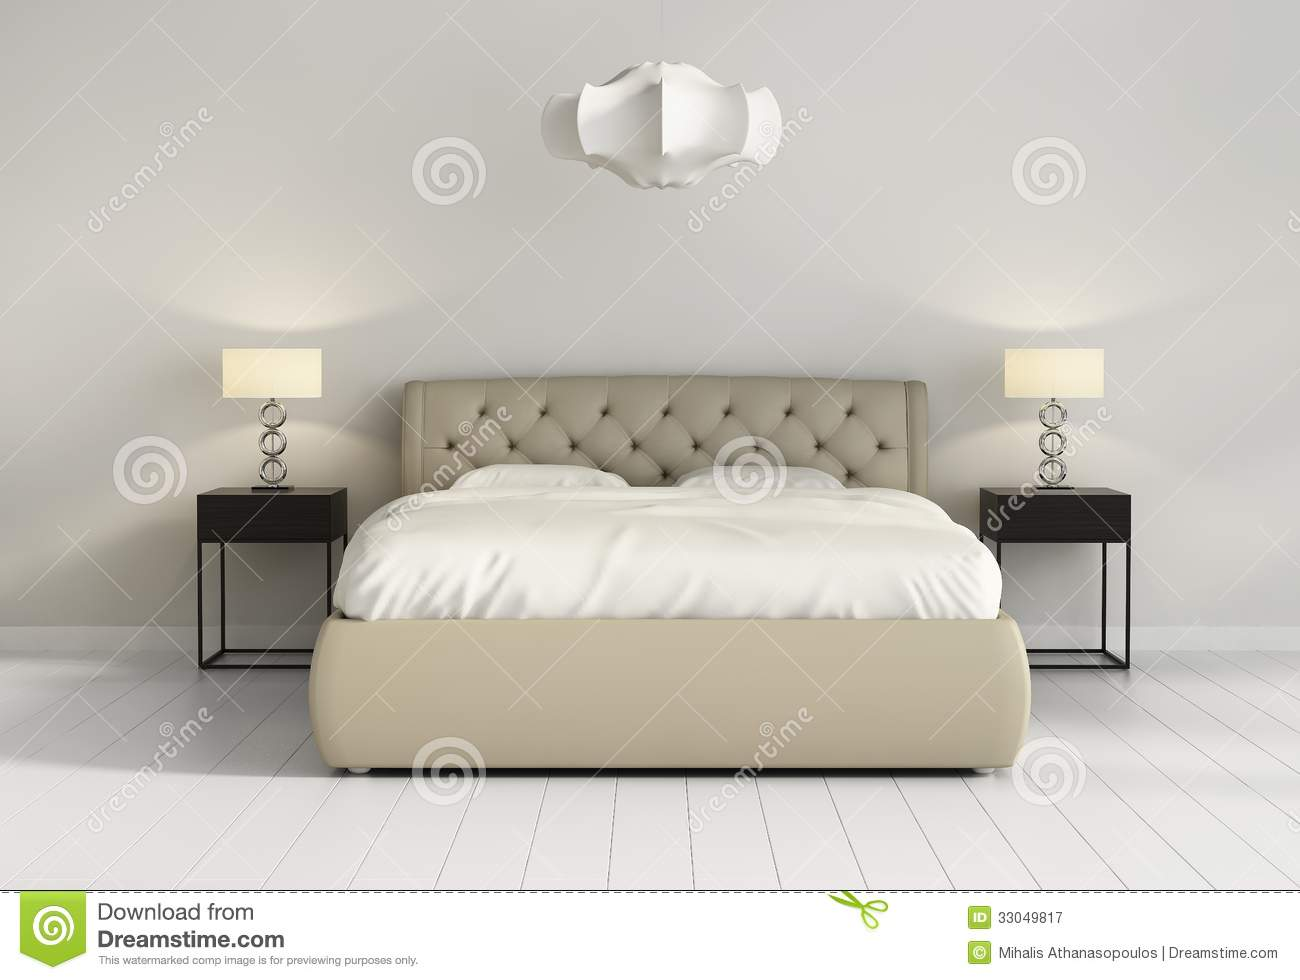 Chic tufted leather bed in contemporary chic bedroom front Royalty Free  Stock Photography. Bedroom Stock Photos   205 967 Images